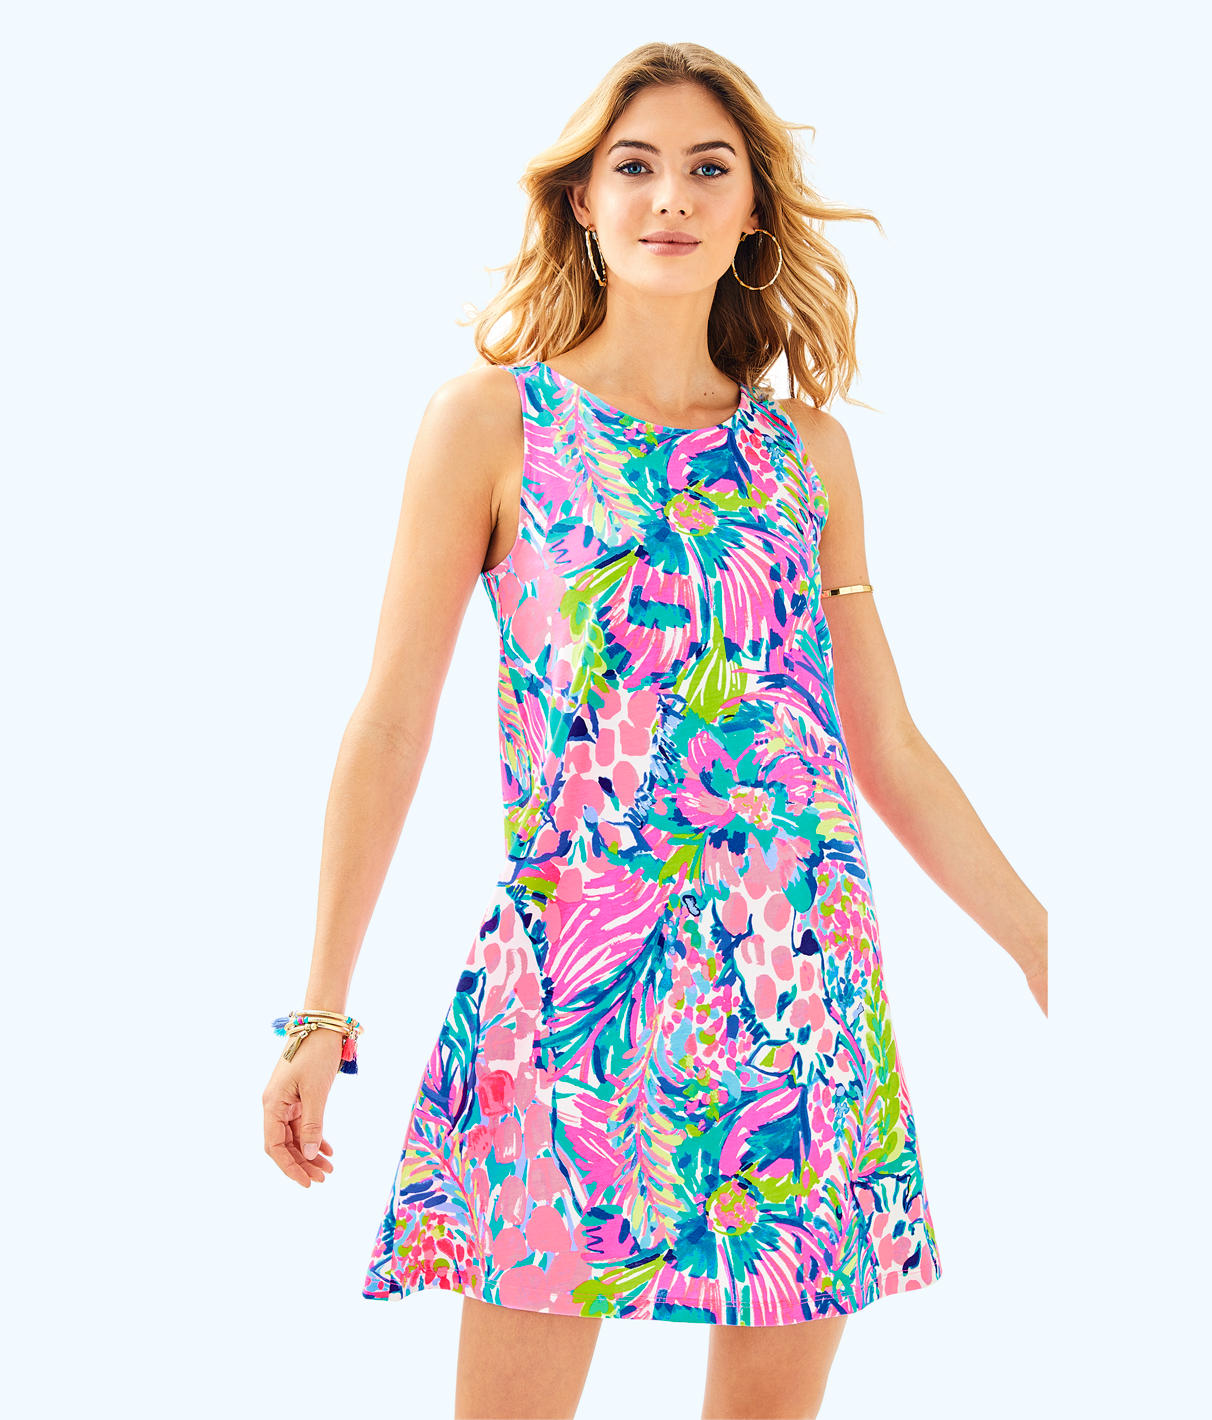 Lilly Pulitzer Lilly Pulitzer Womens Kristen Dress